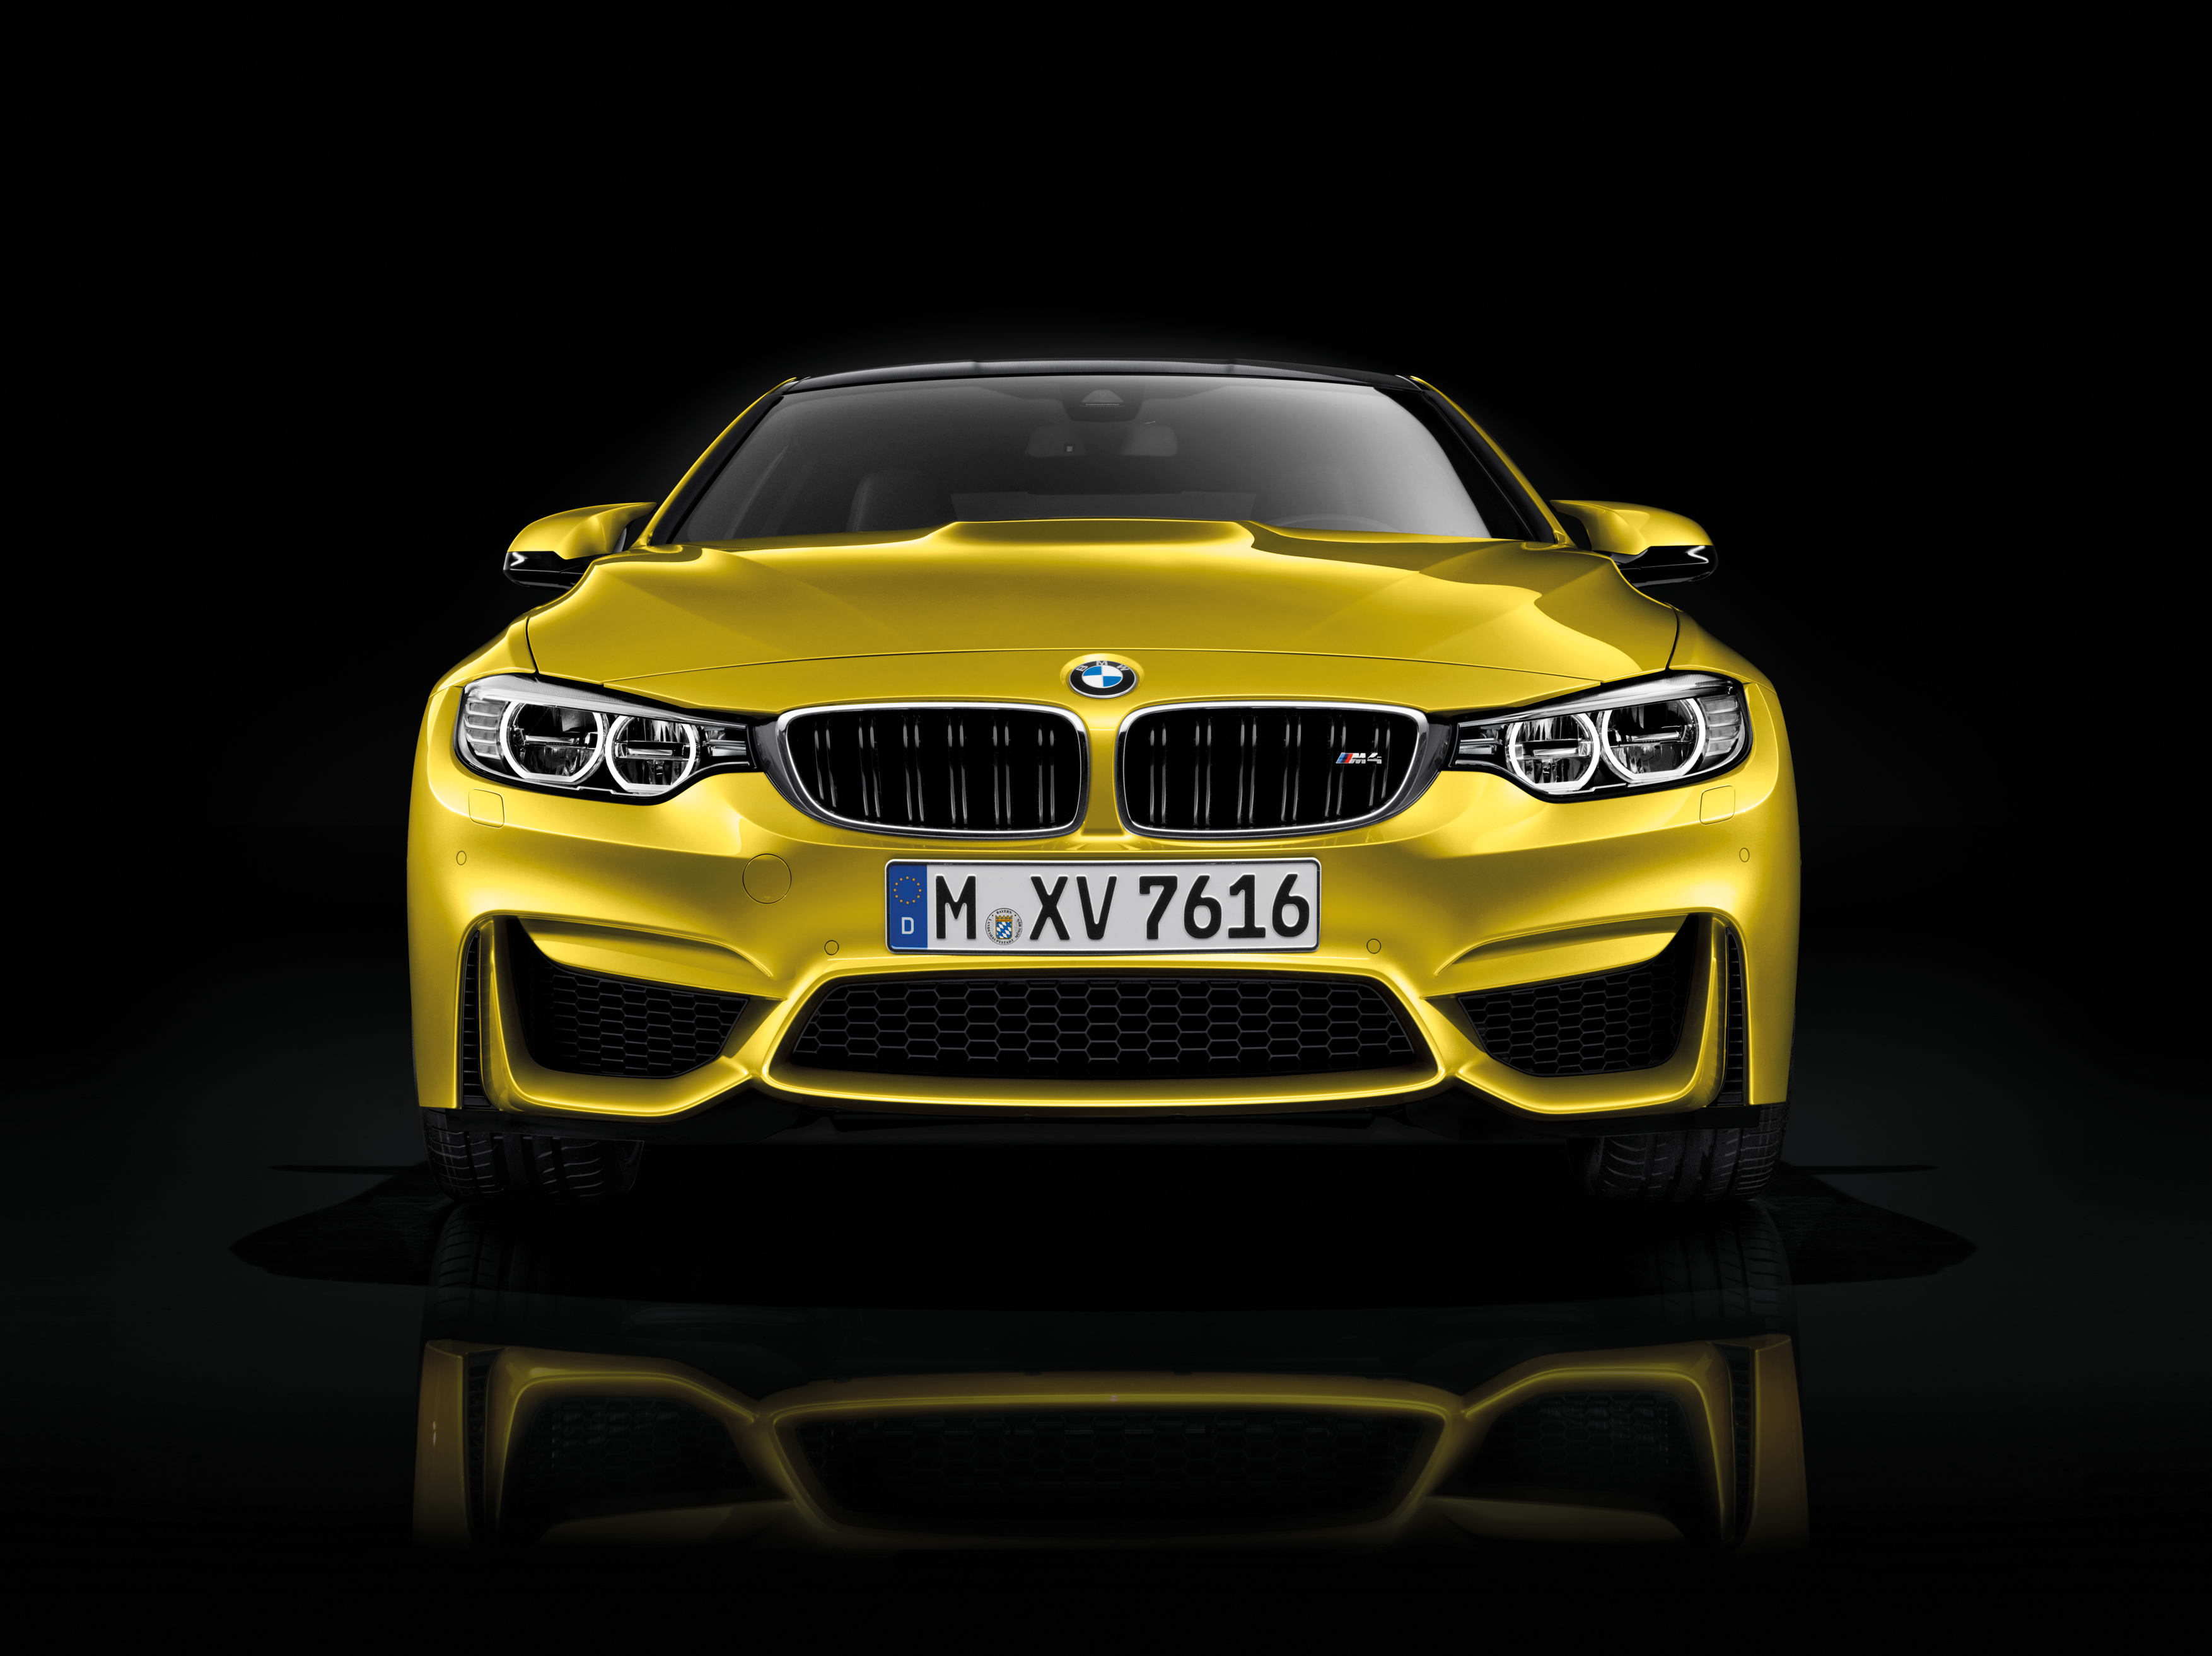 2015 BMW M4 Coupe Stills - (2) - SMADEMEDIA.COM Galleria